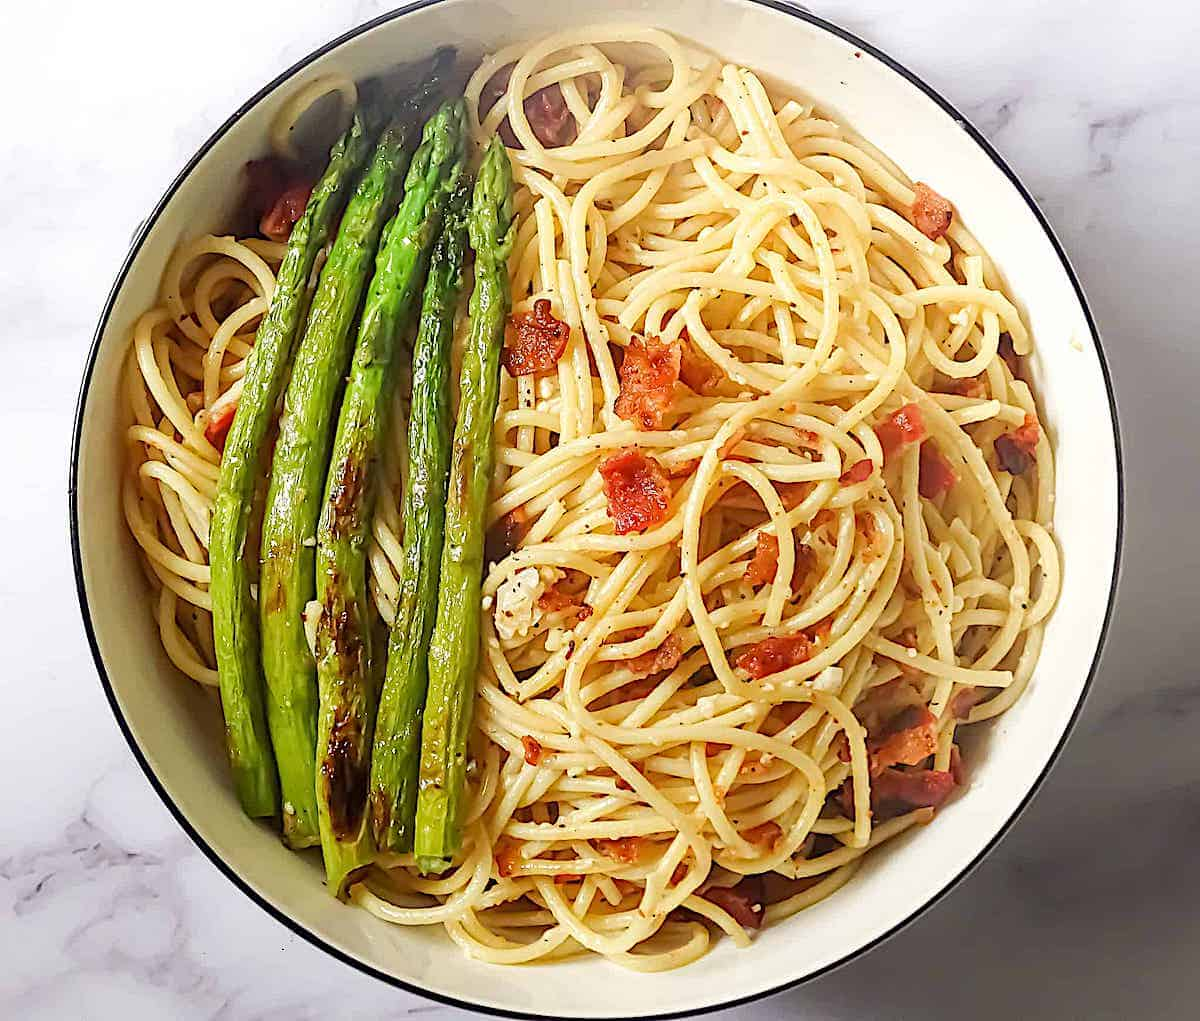 garlic butter pasta with bacon bits and fried asparagus in a white bowl